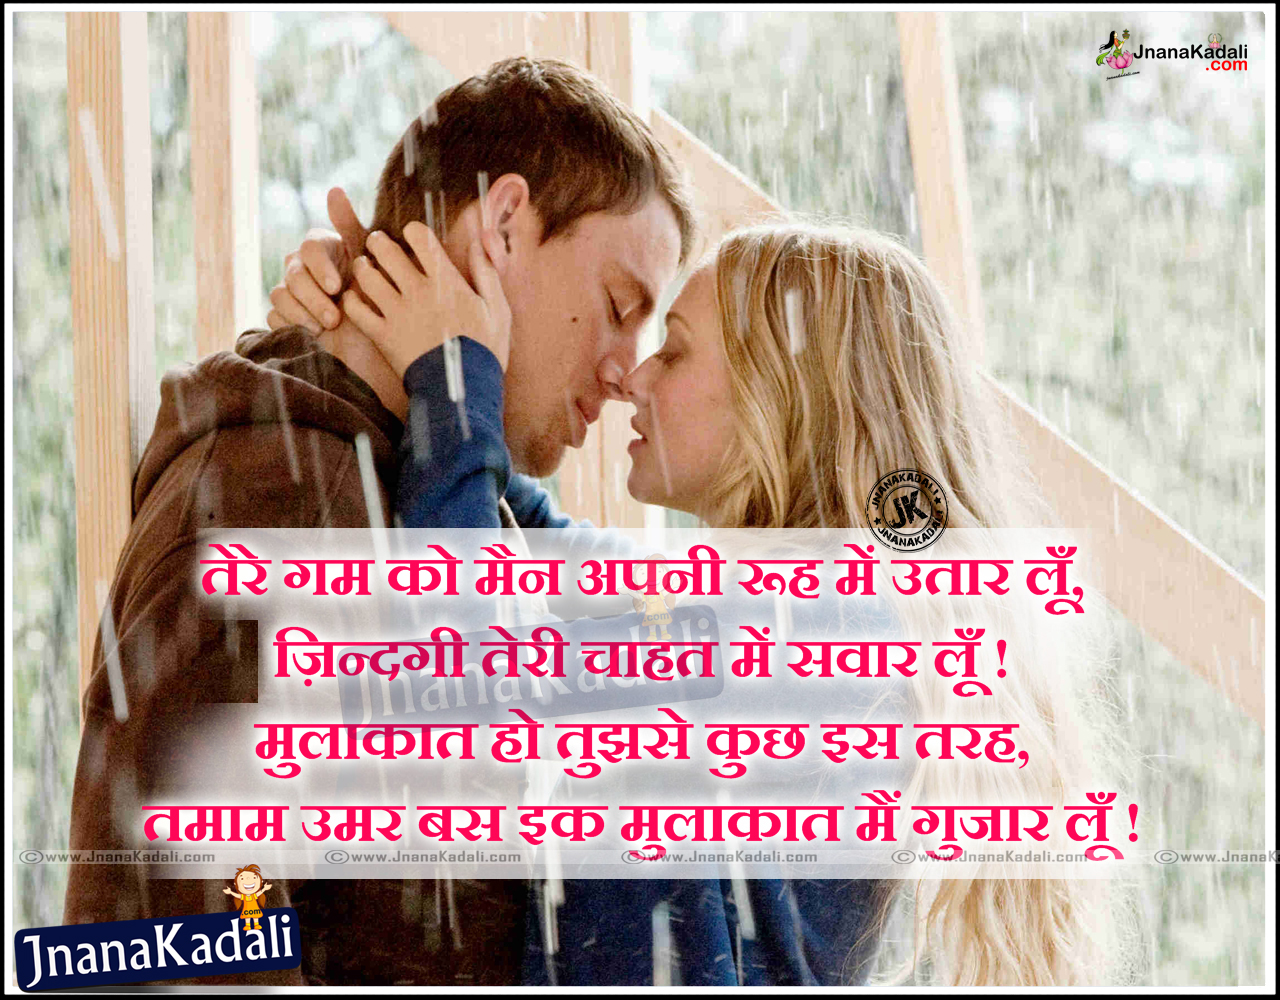 Love couple Wallpaper With Shayri : Love couple Hd Wallpapers With Quotes In Hindi Wallpaper sportstle